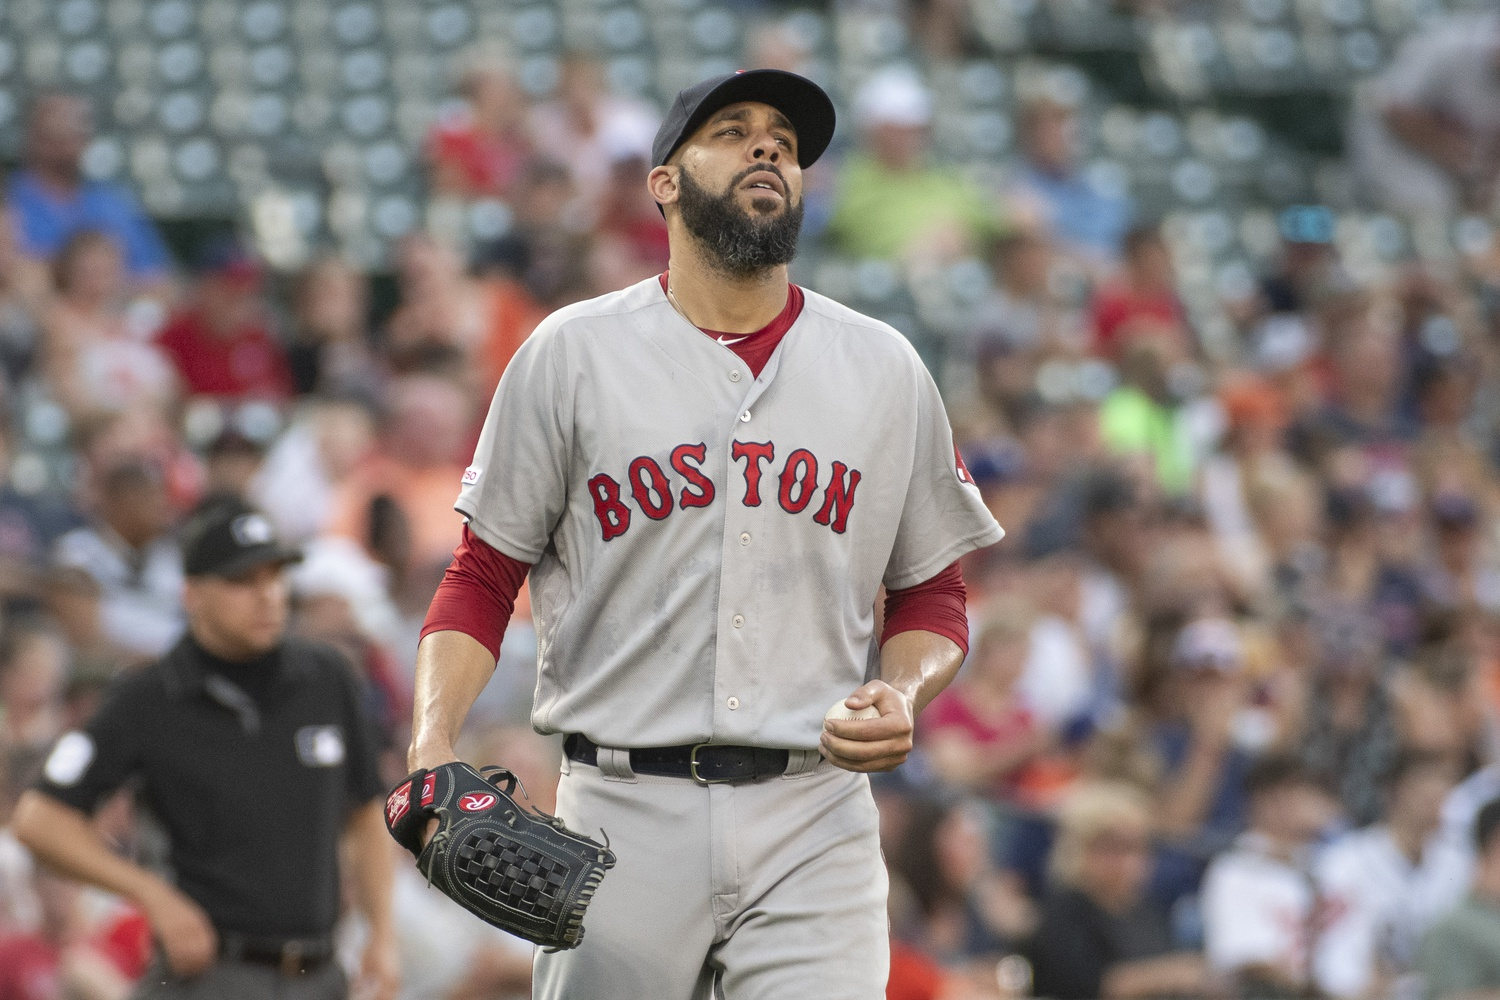 Breaking down who deserves most blame for Red Sox' issues this season